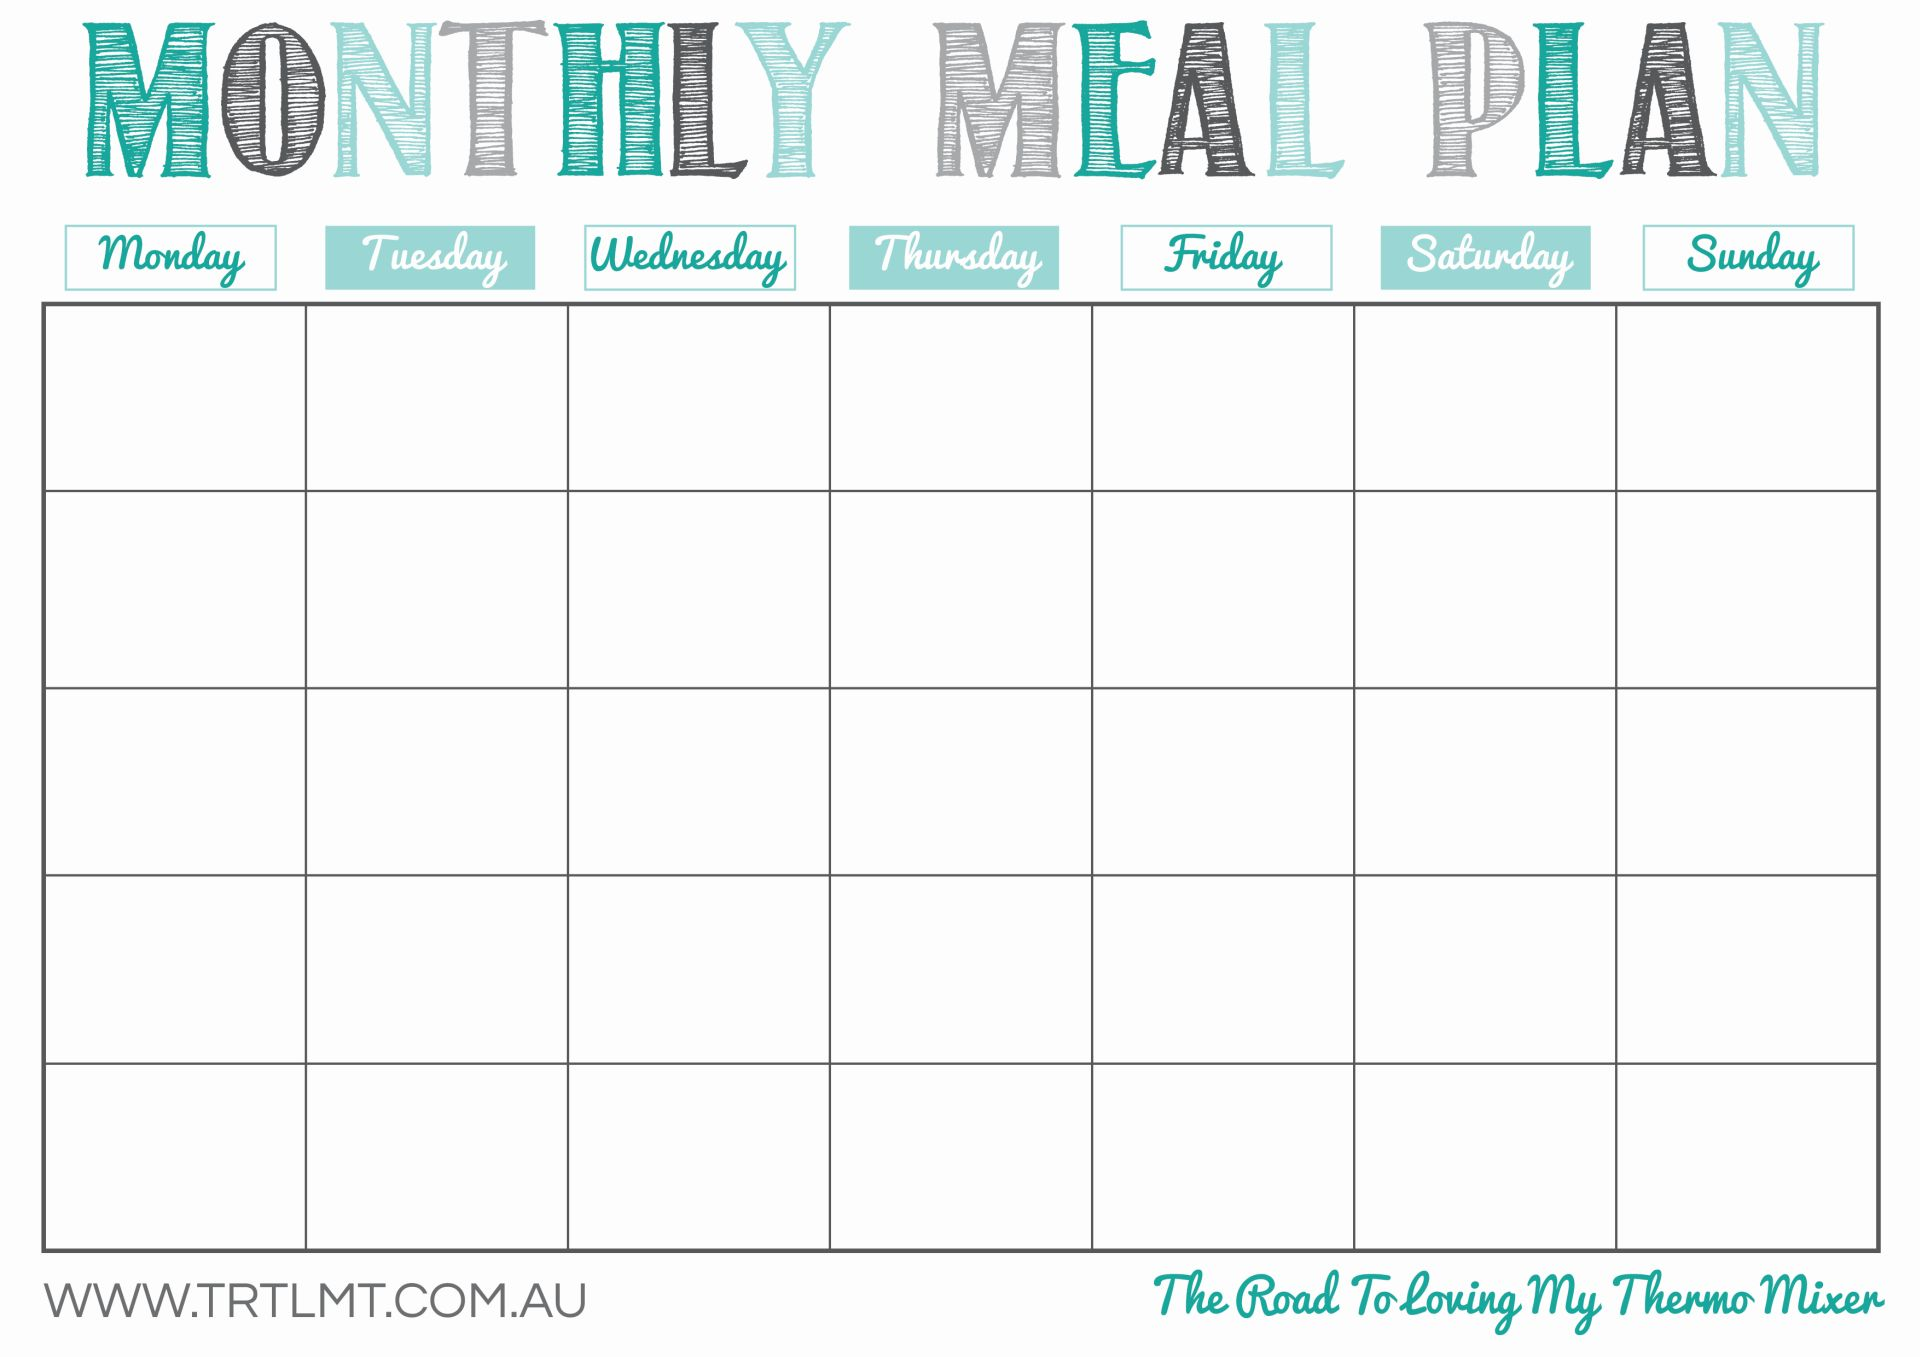 28 Useful Printable Monthly Meal Planners | KittyBabyLove.com